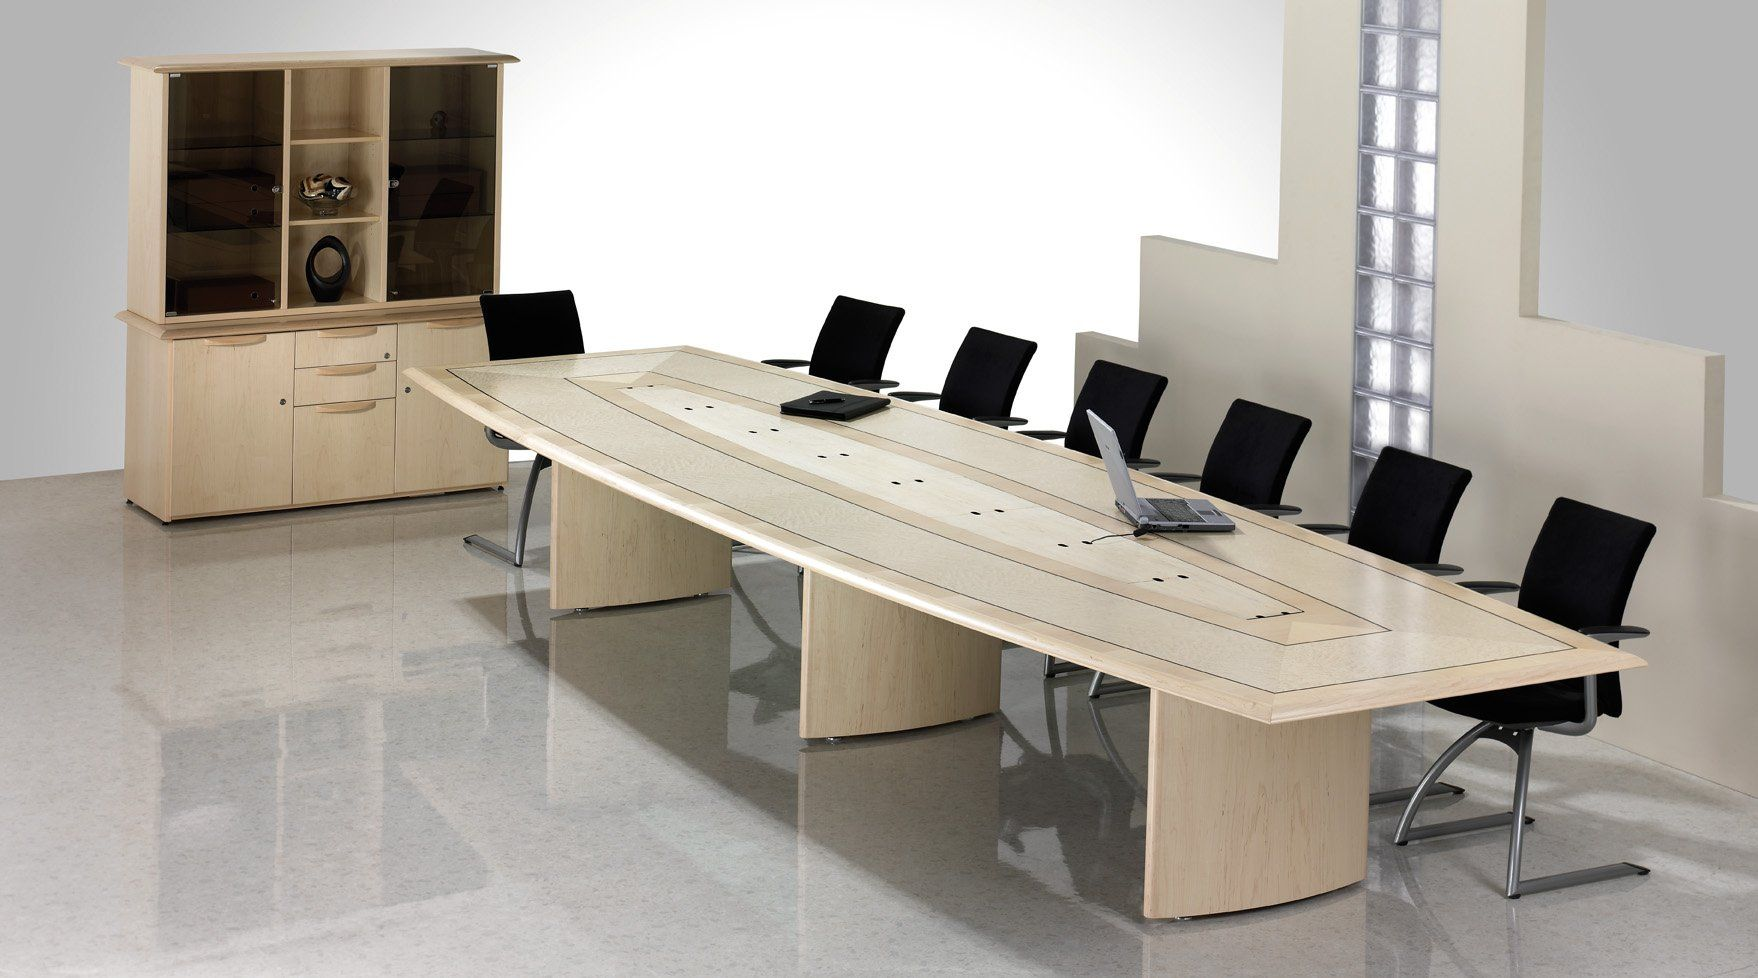 Oc Office Furniture Installs New Or